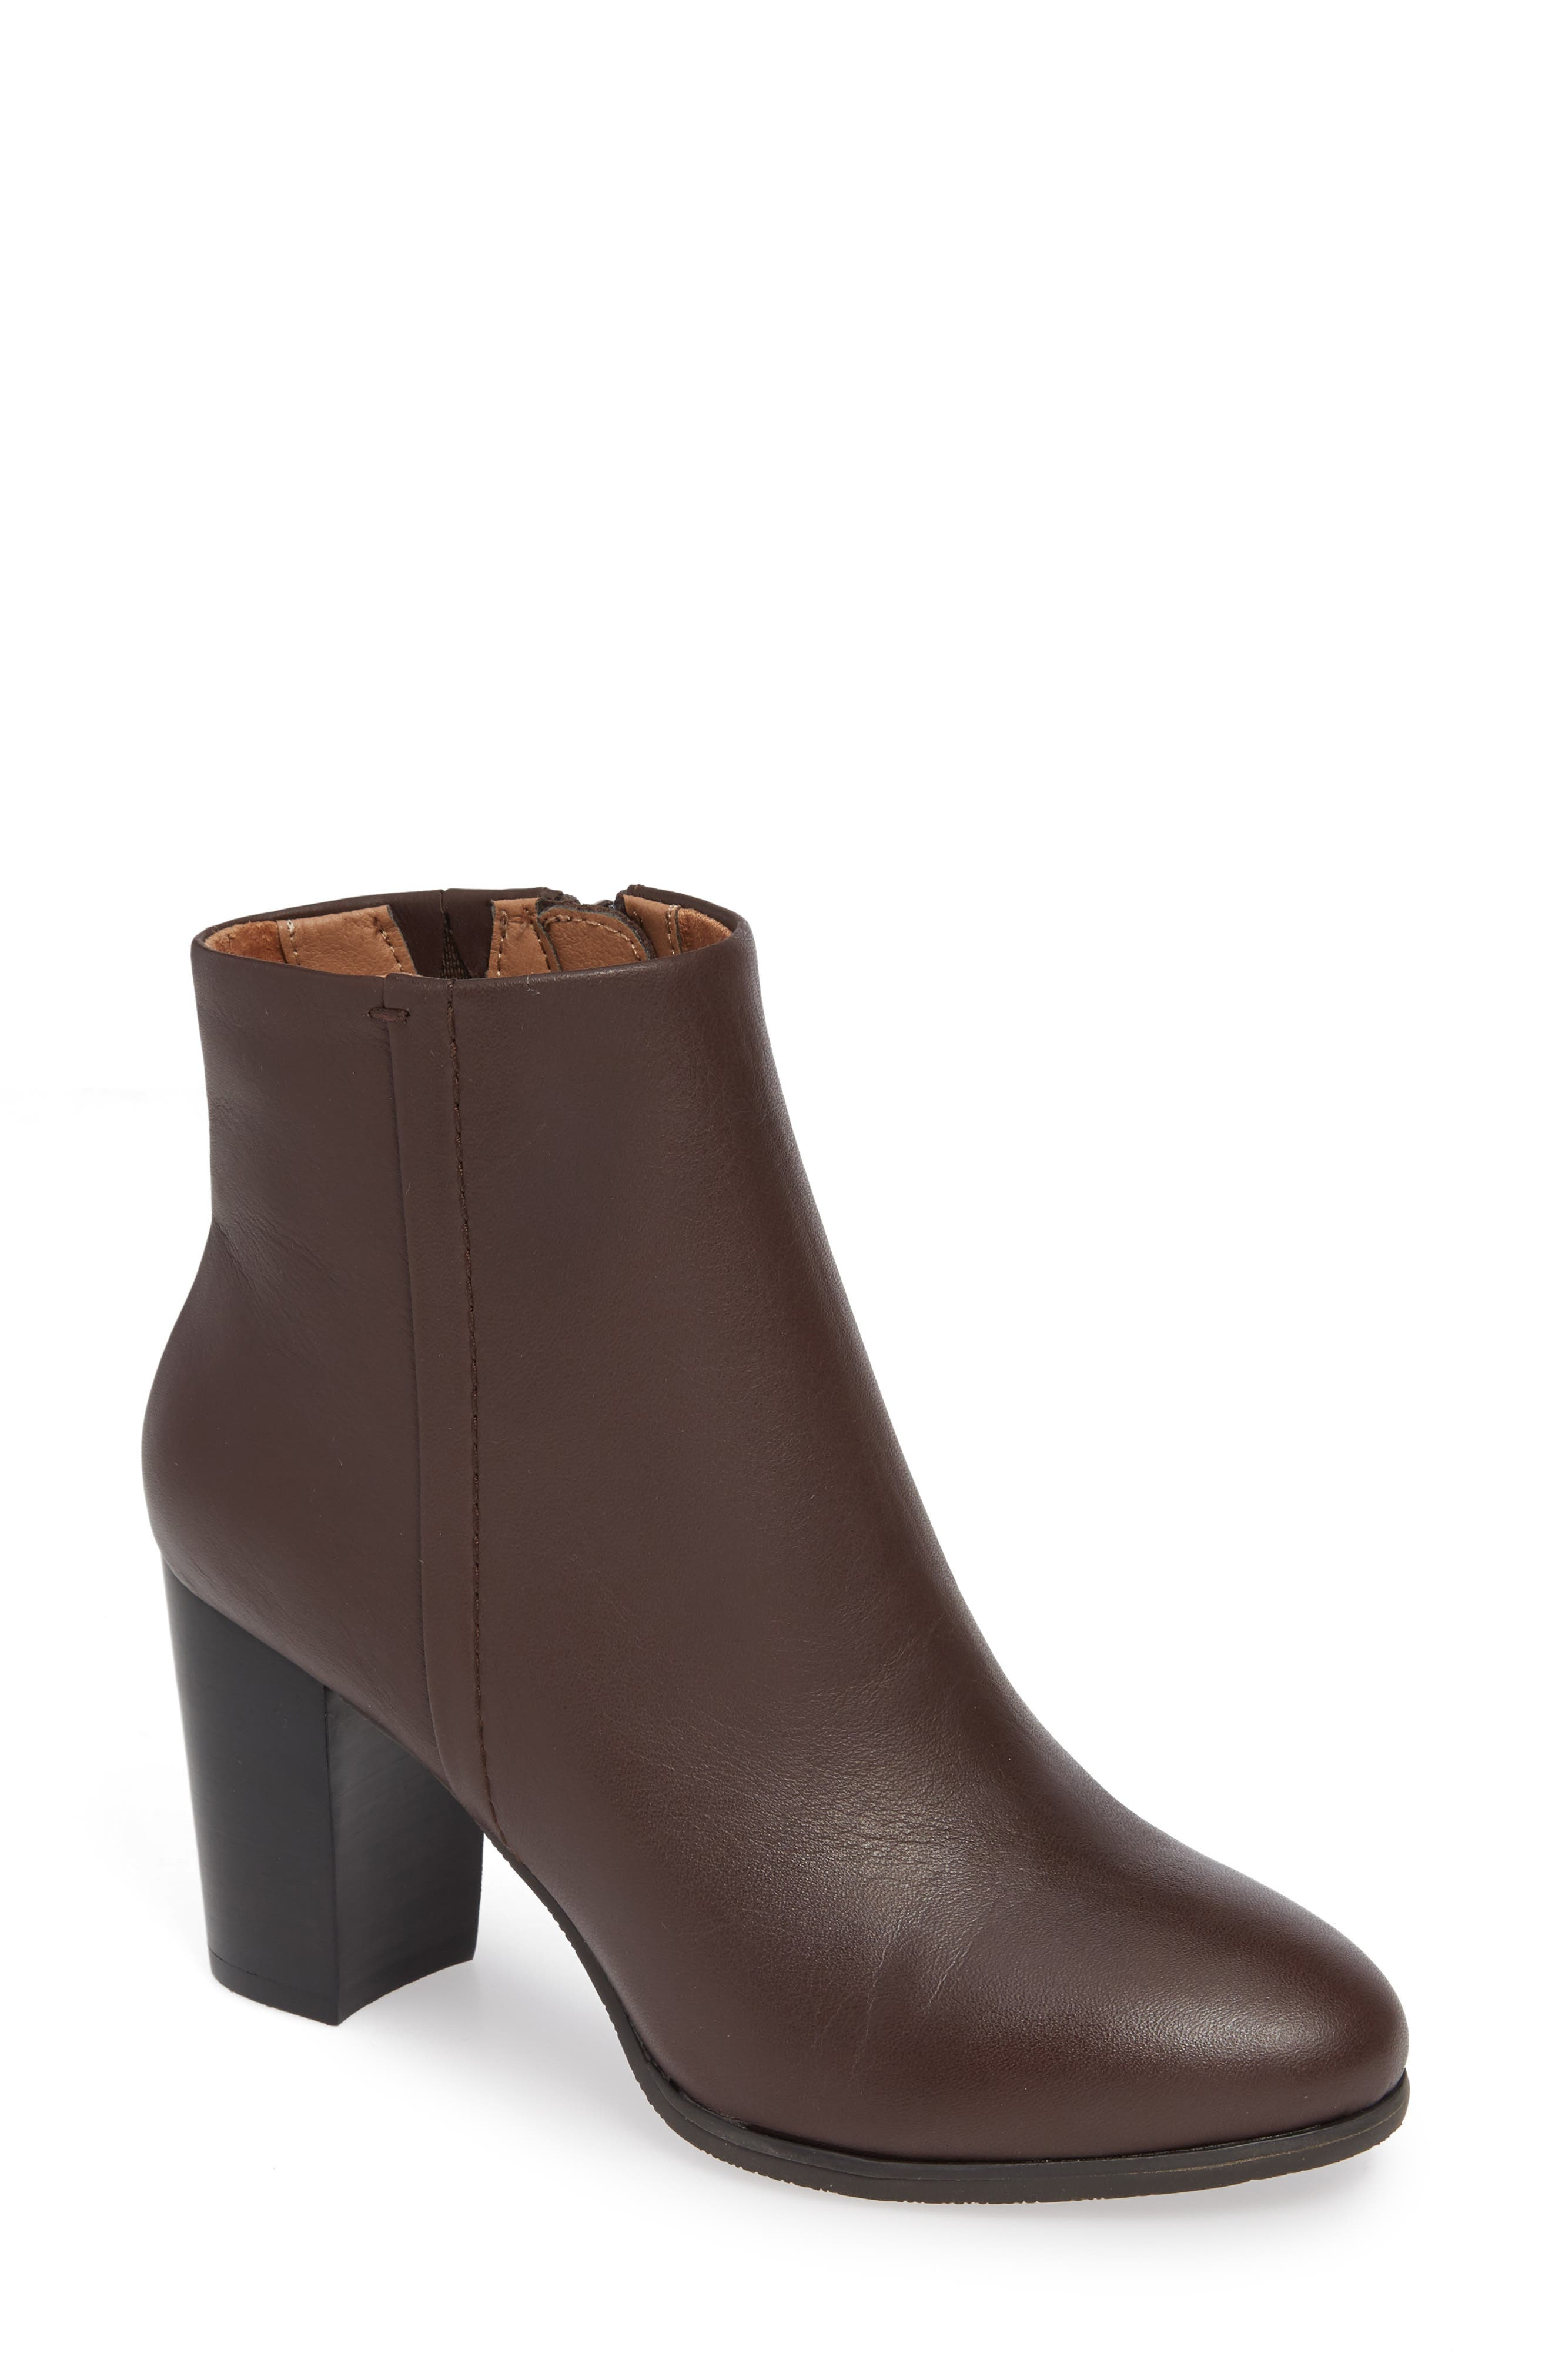 Vionic Kennedy Ankle Bootie, Brown